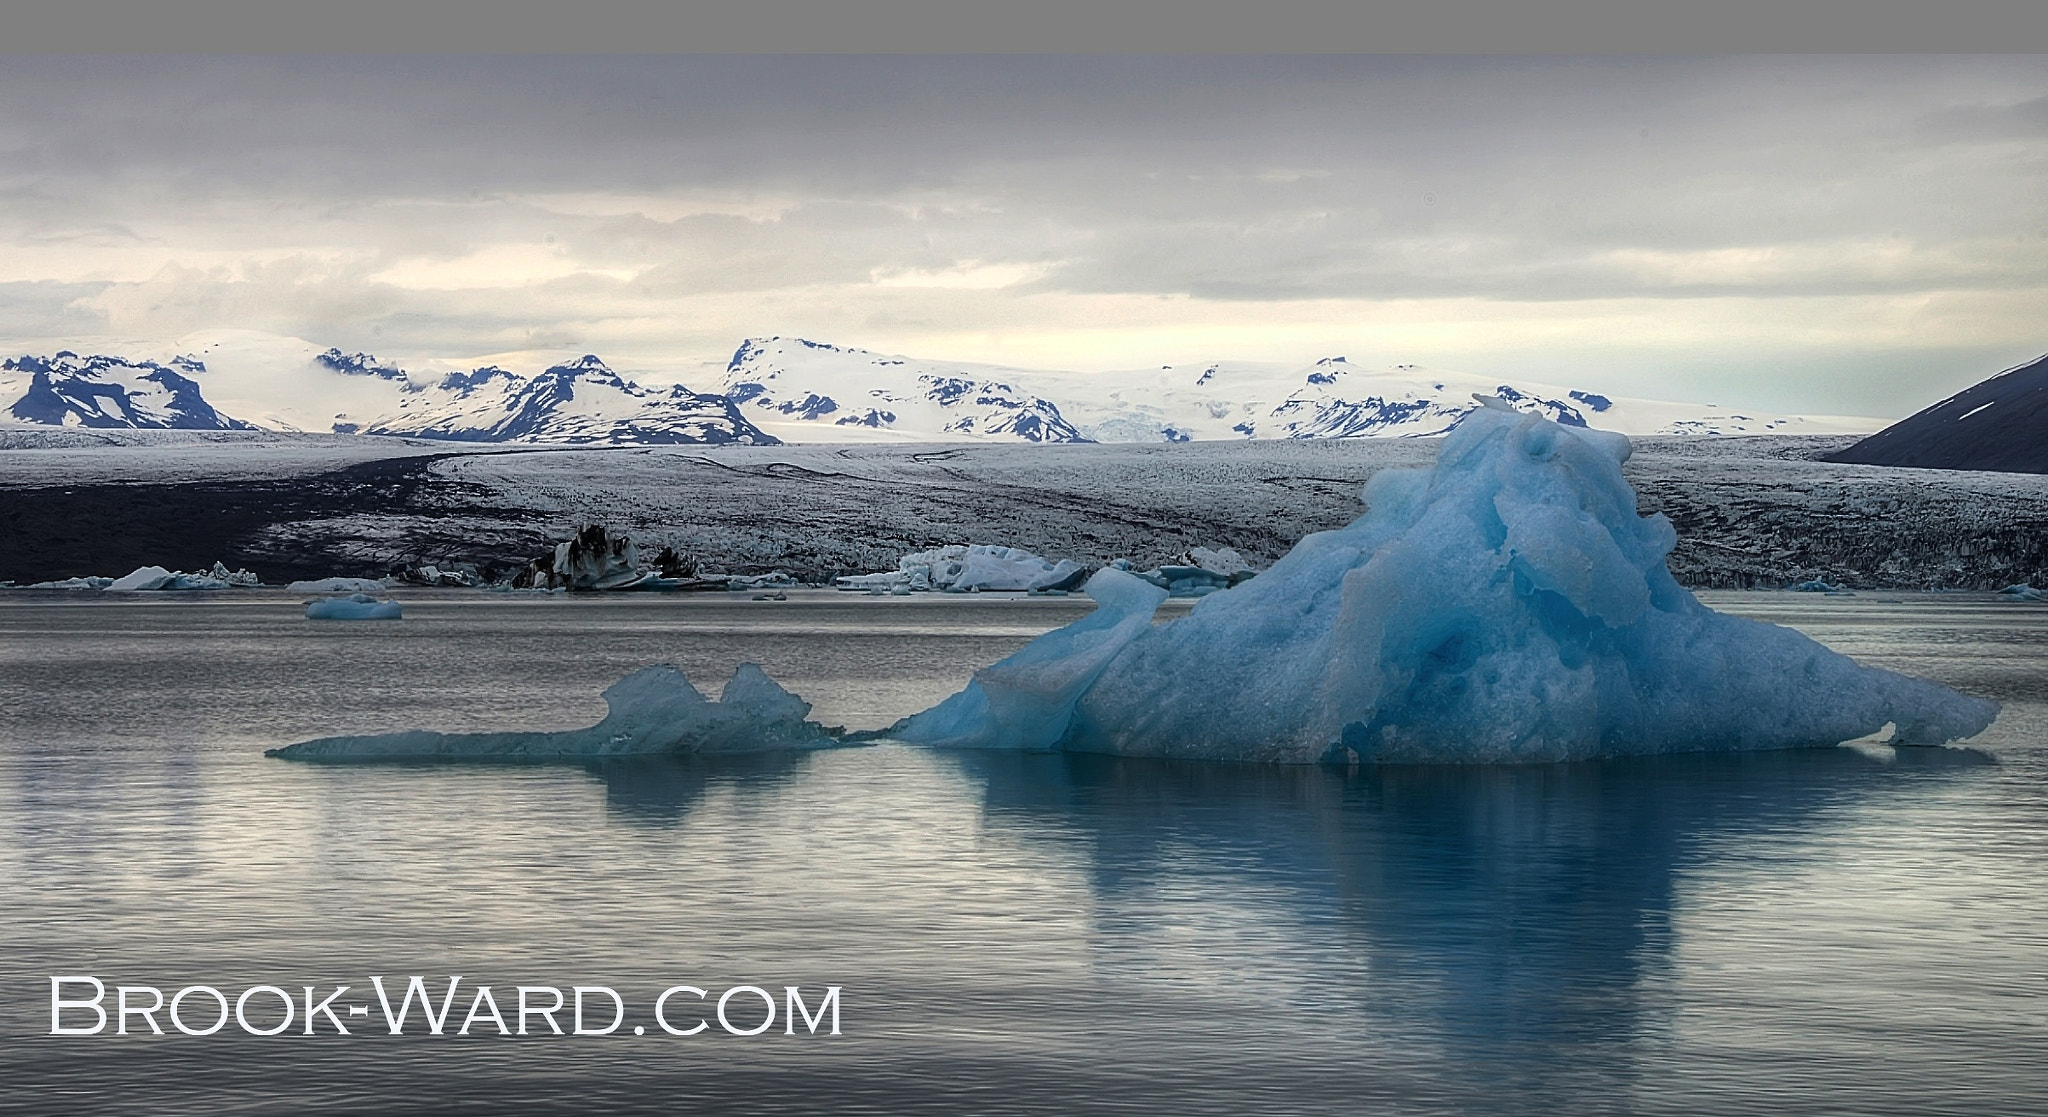 Photograph Iceland Iceberg by Brook Ward on 500px